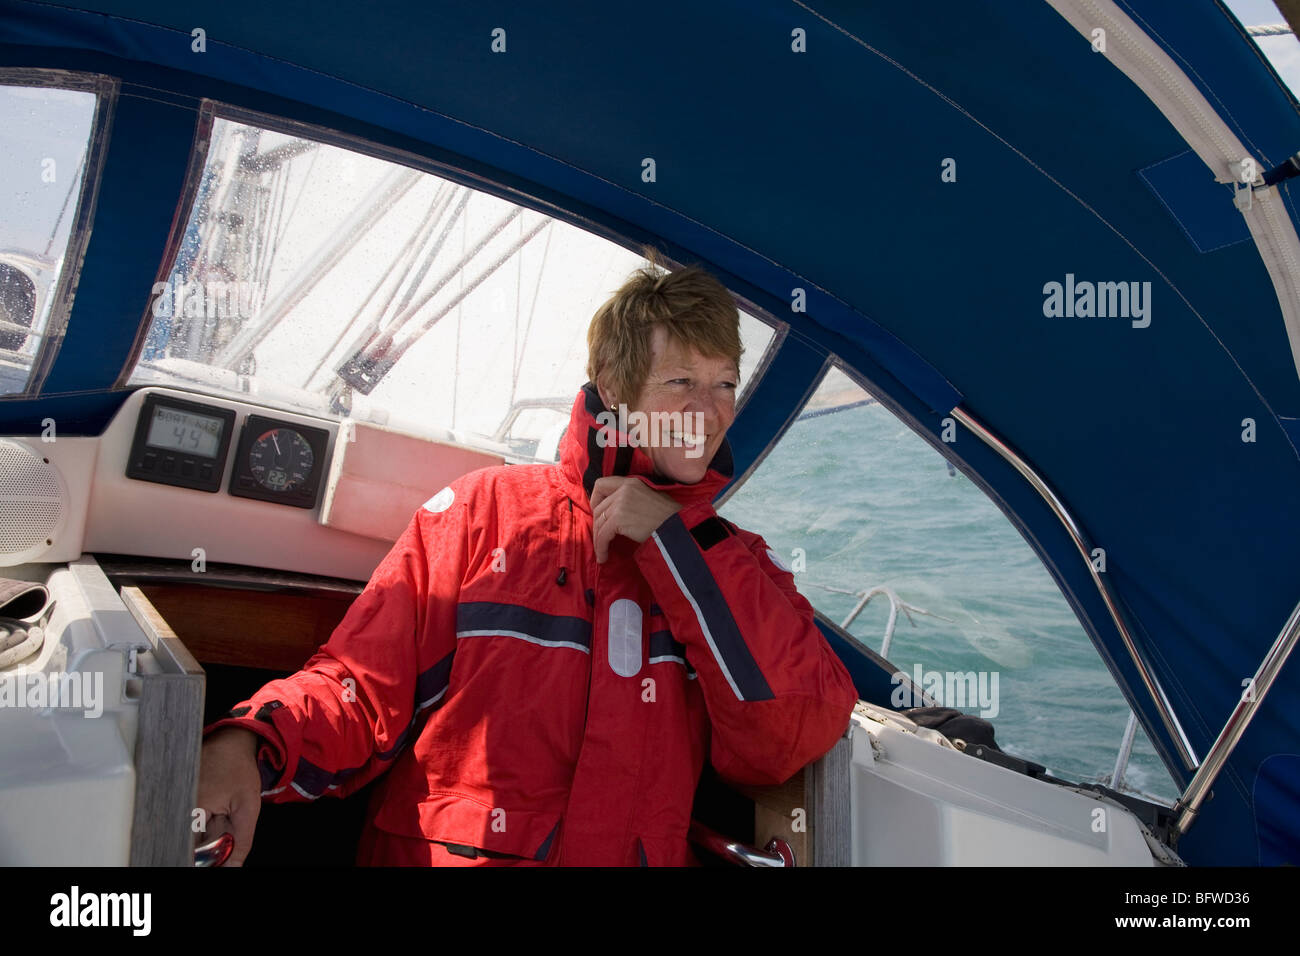 Woman sheltering on yacht - Stock Image